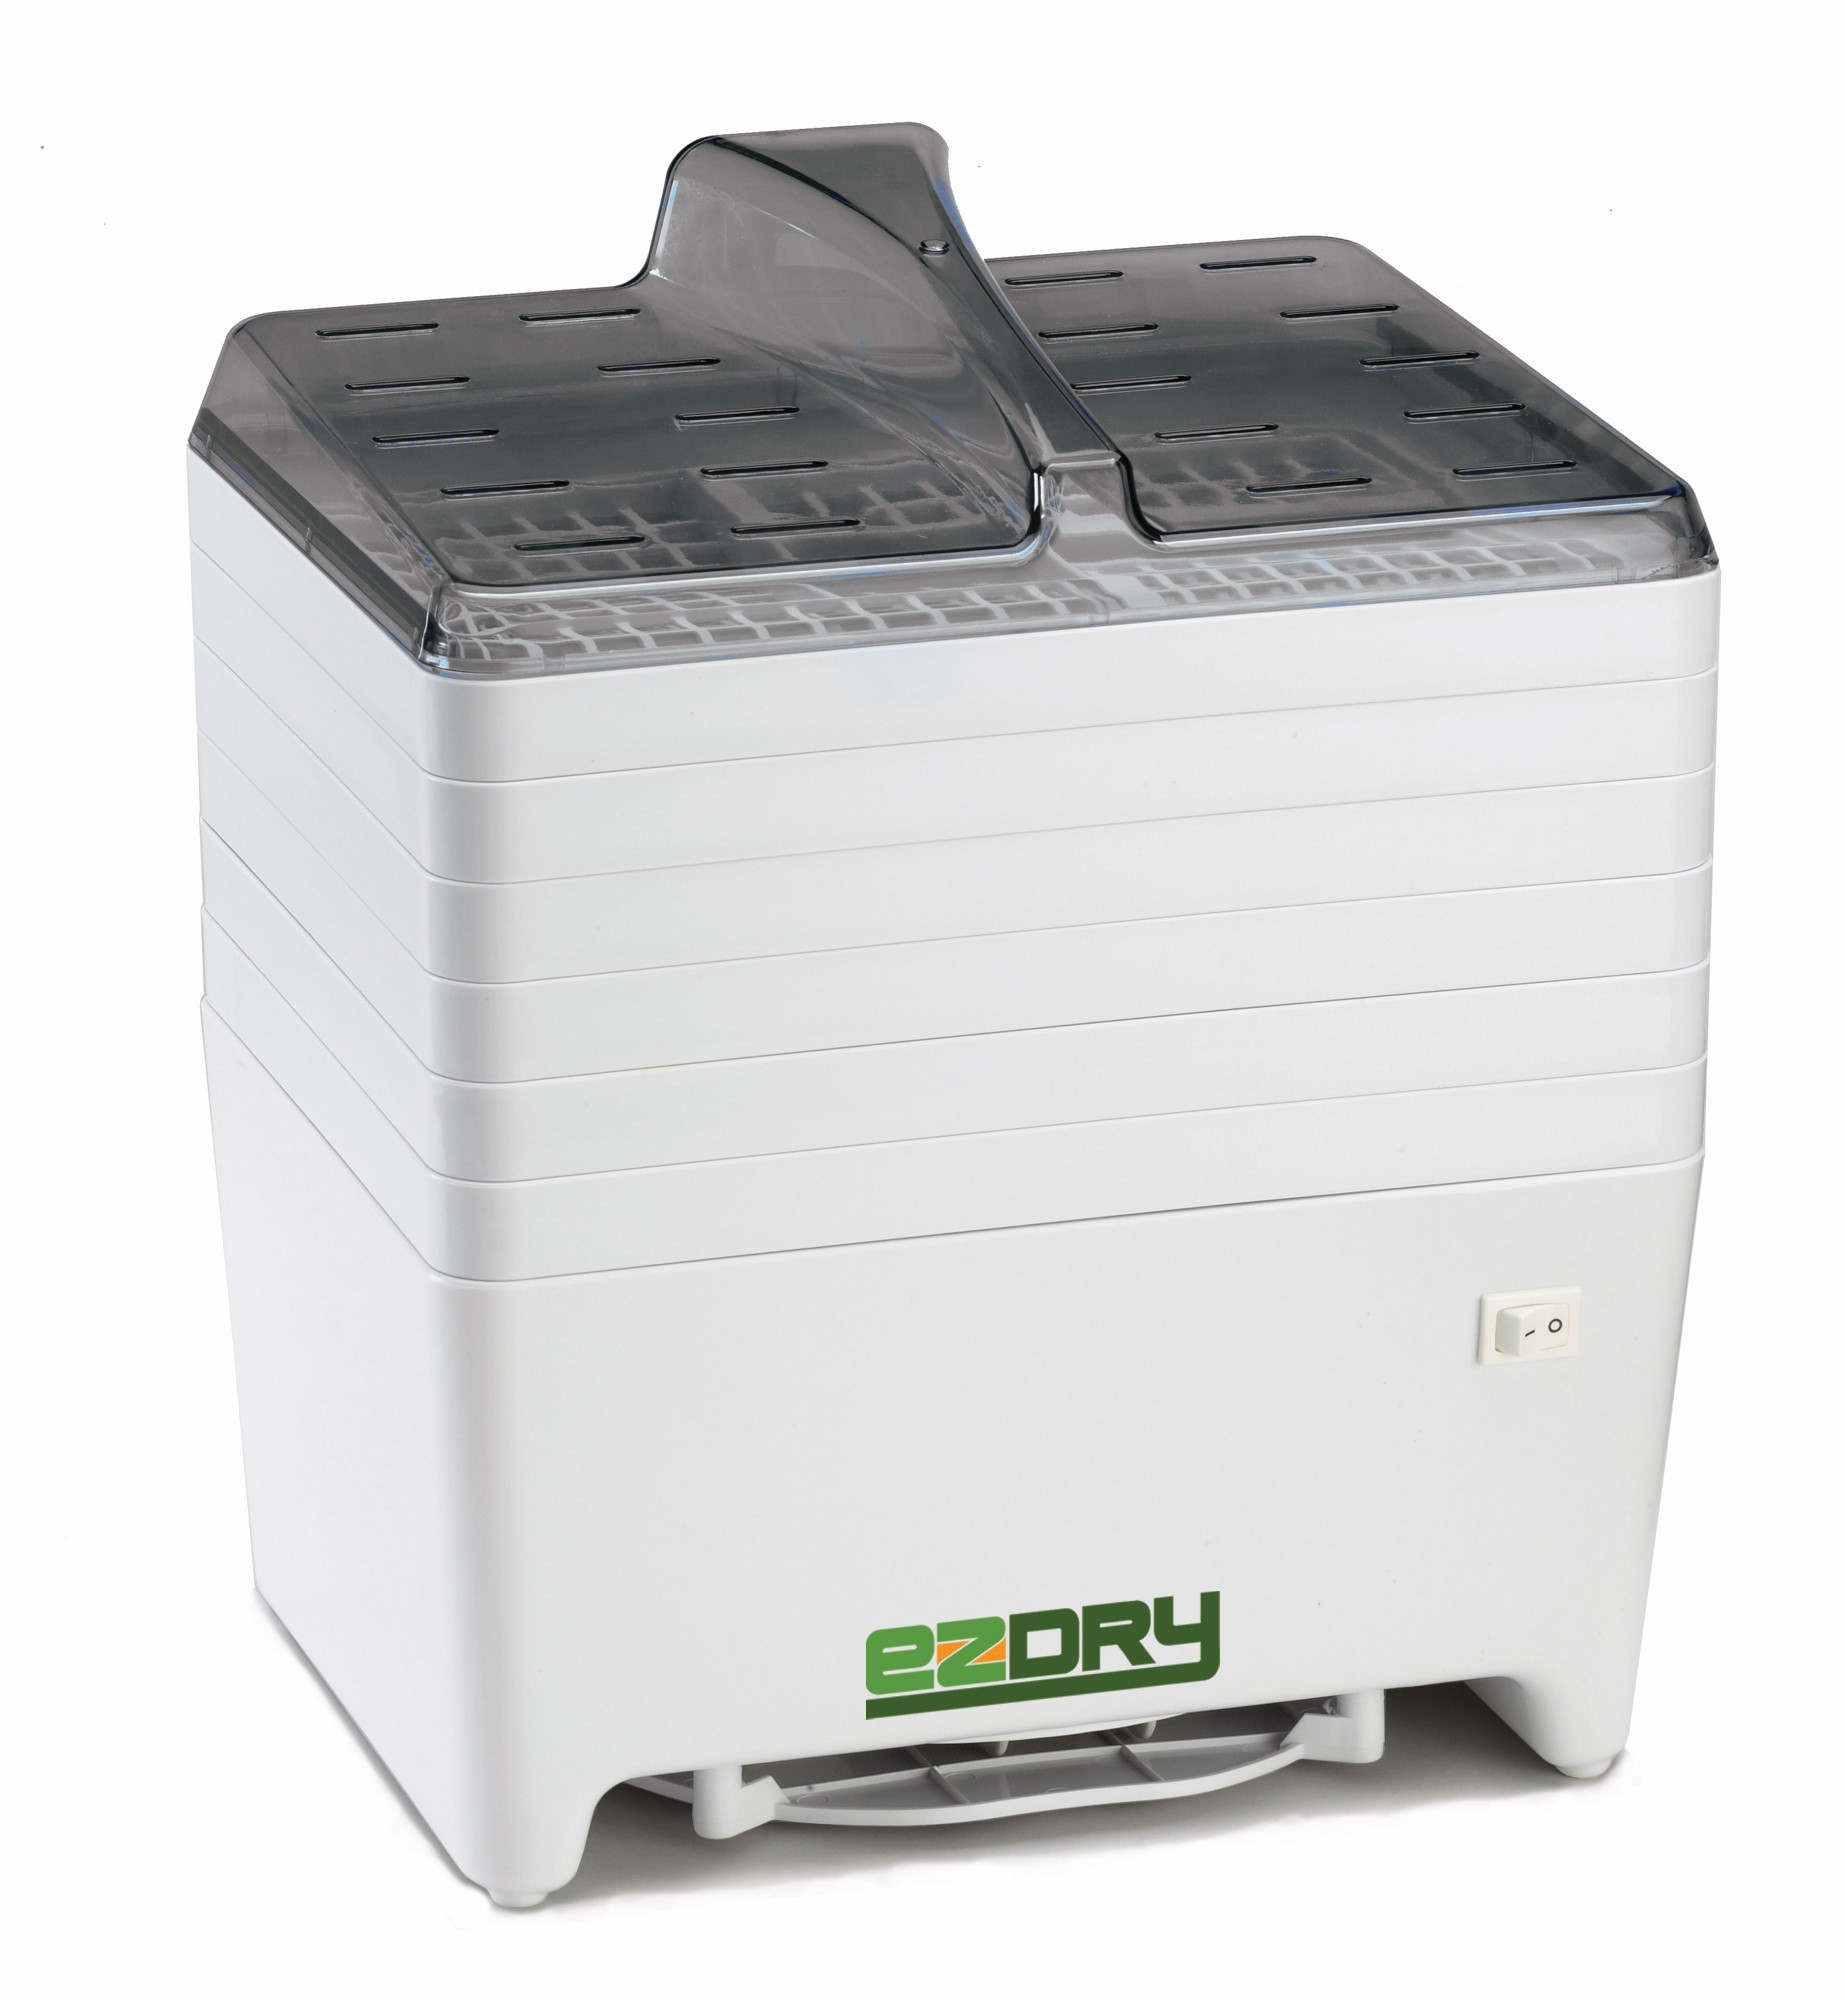 Recalled EZDRY food dehydrator